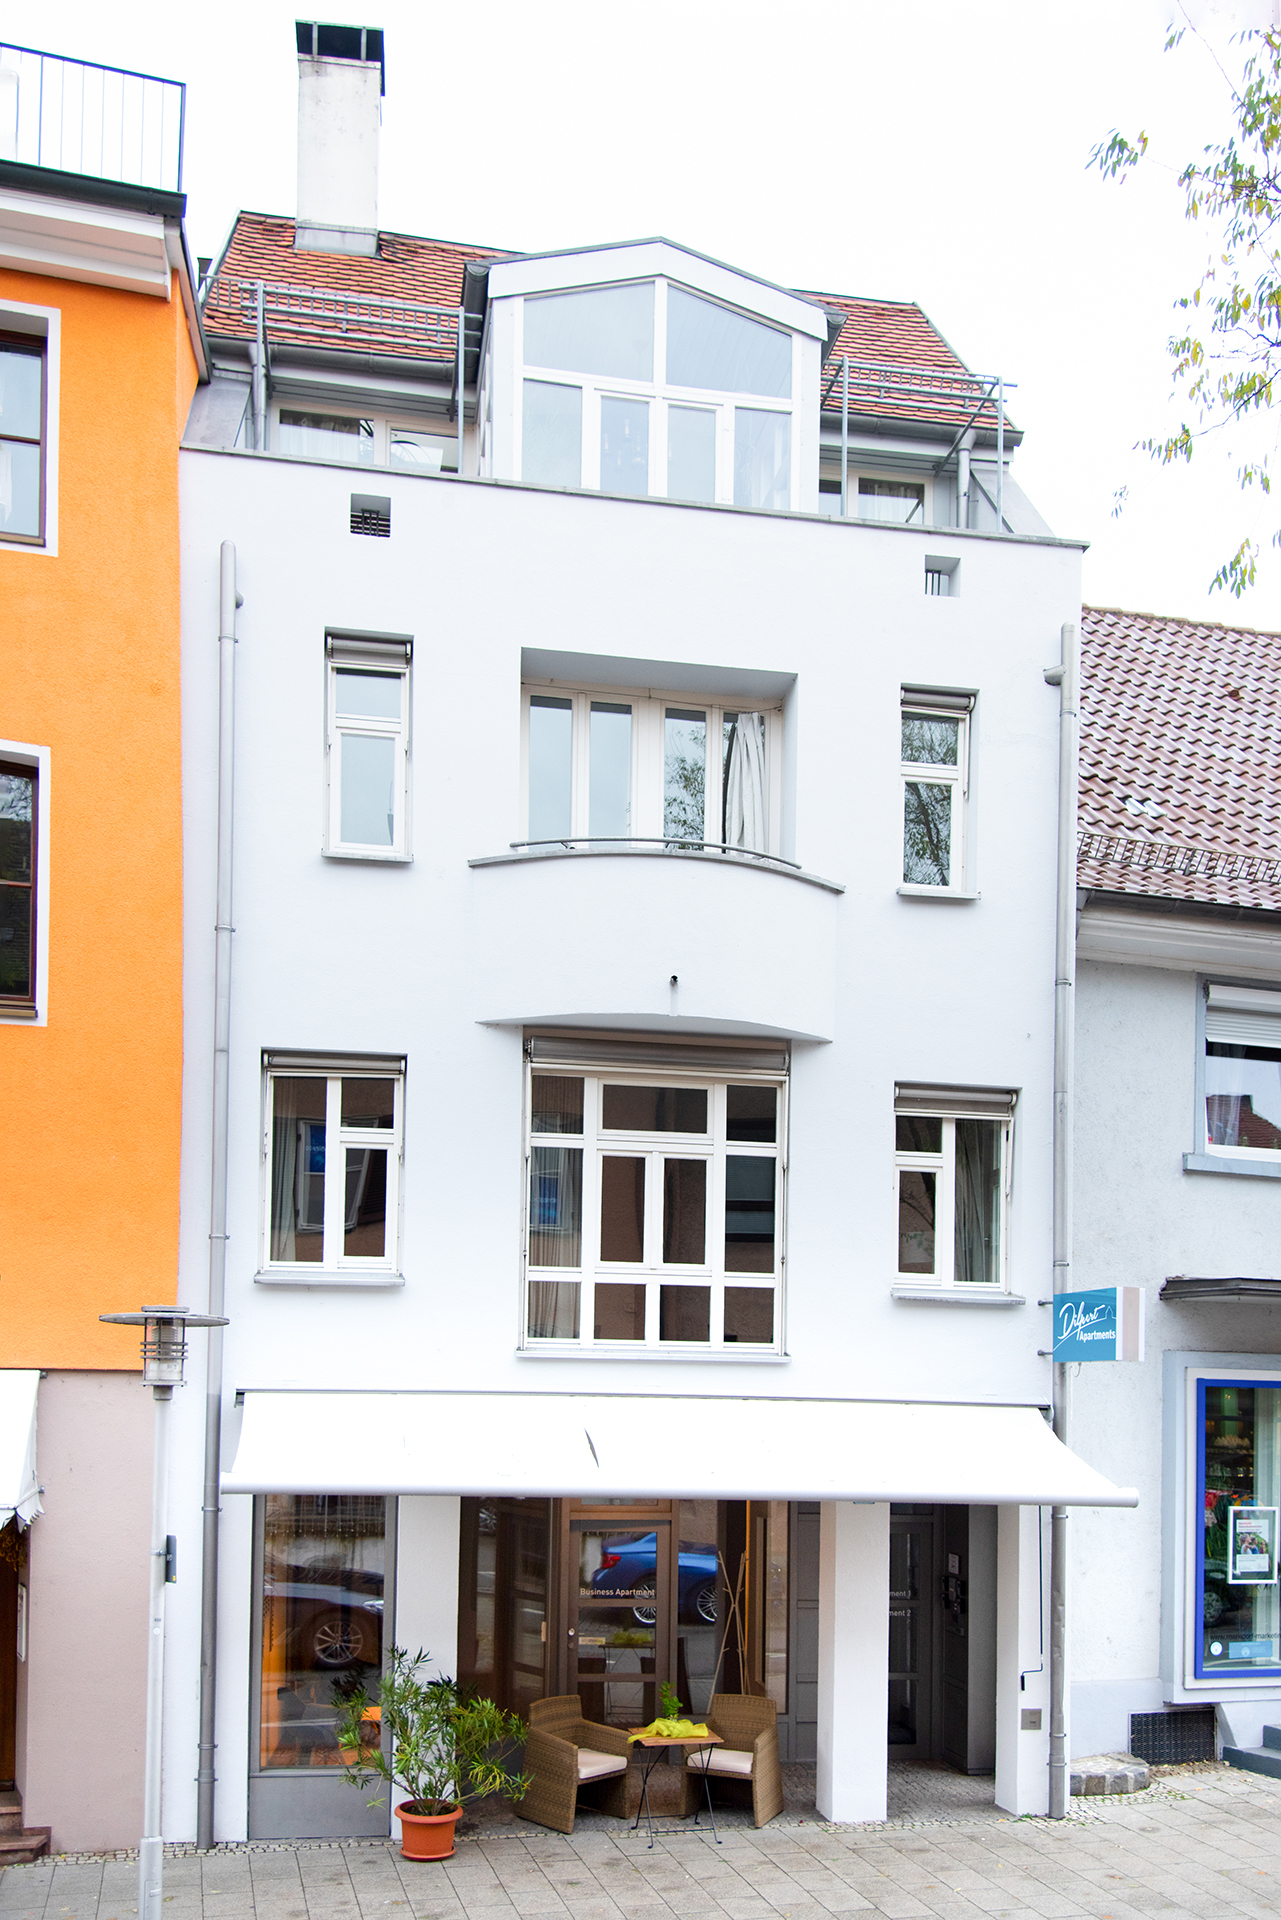 Business apartment on Lake Constance - Exterior View